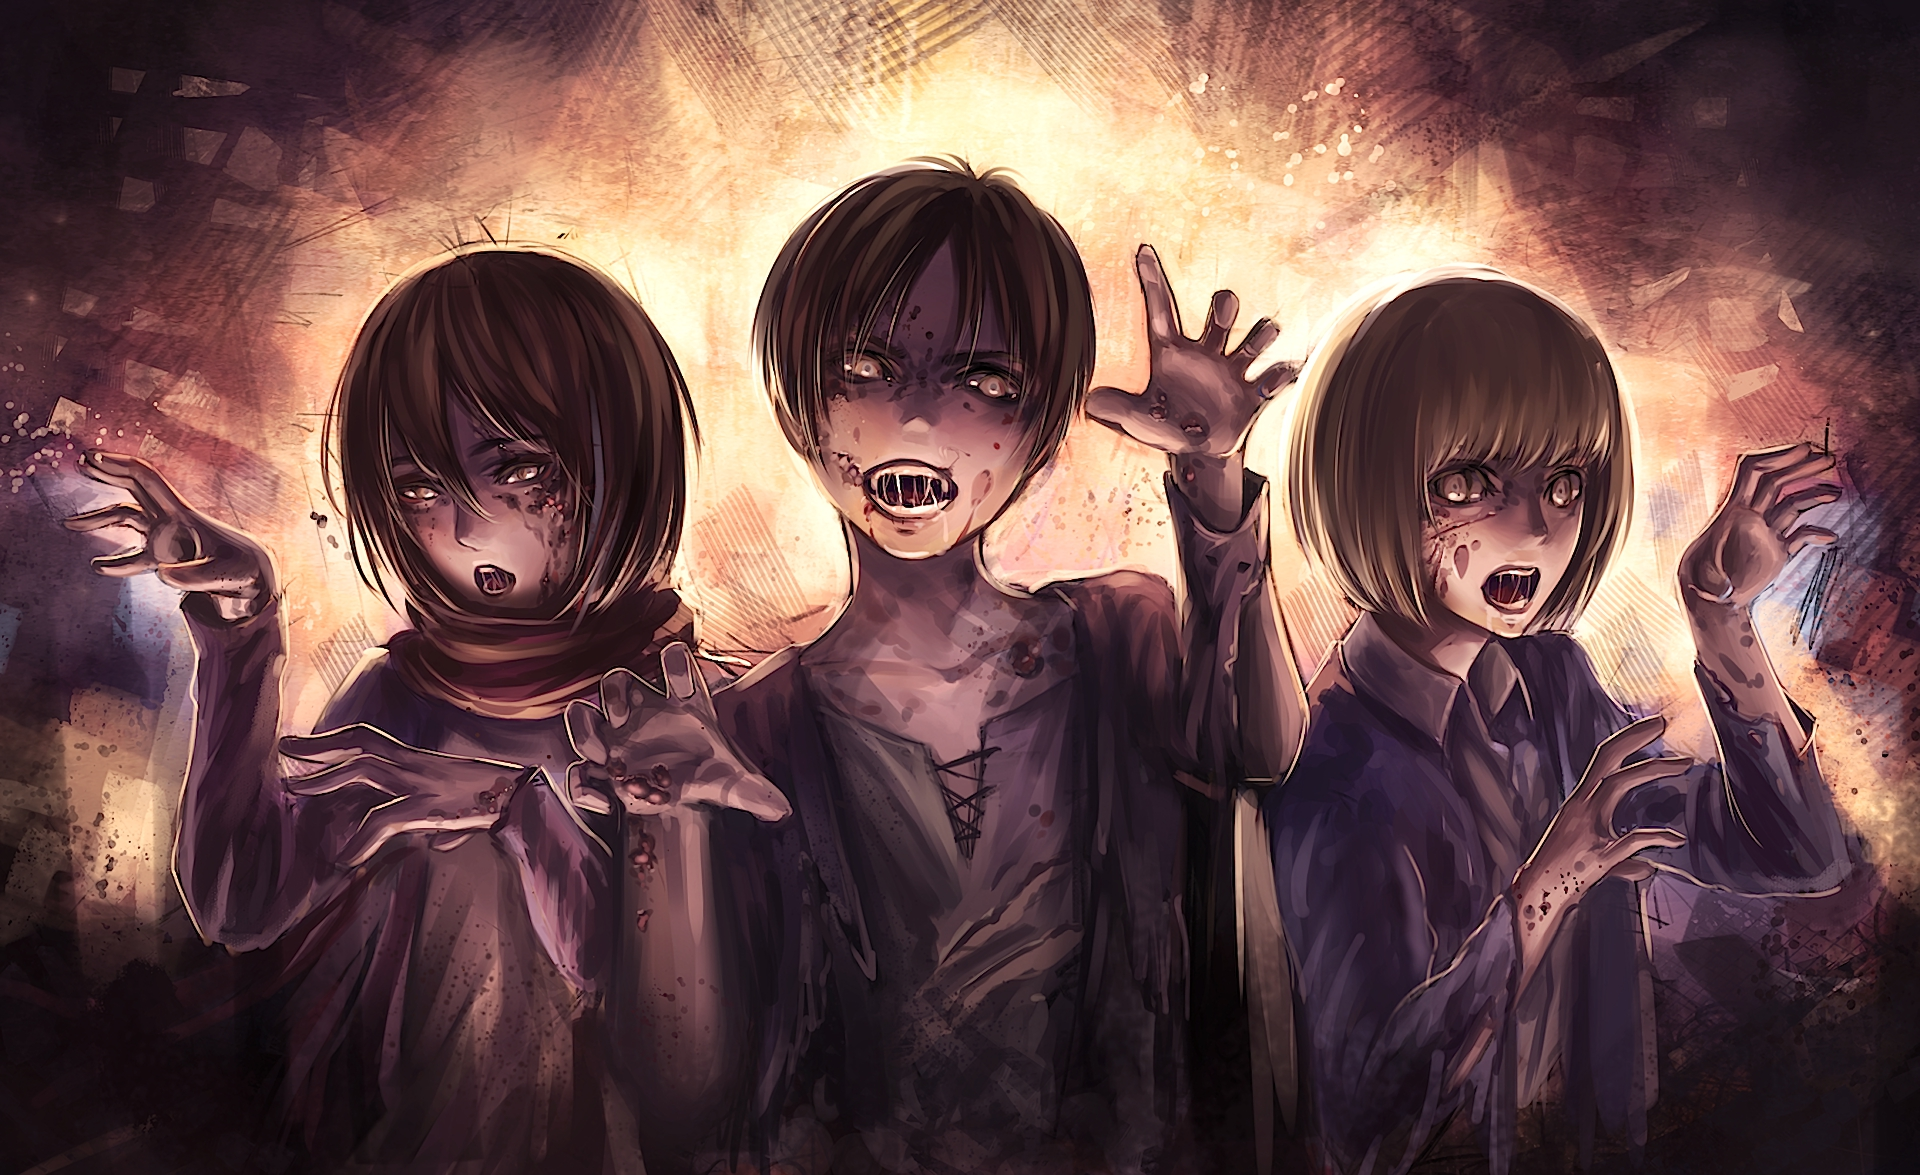 Eren Mikasa And Armin Become Zombies Hd Wallpaper Background Image 1920x1175 Id 814928 Wallpaper Abyss